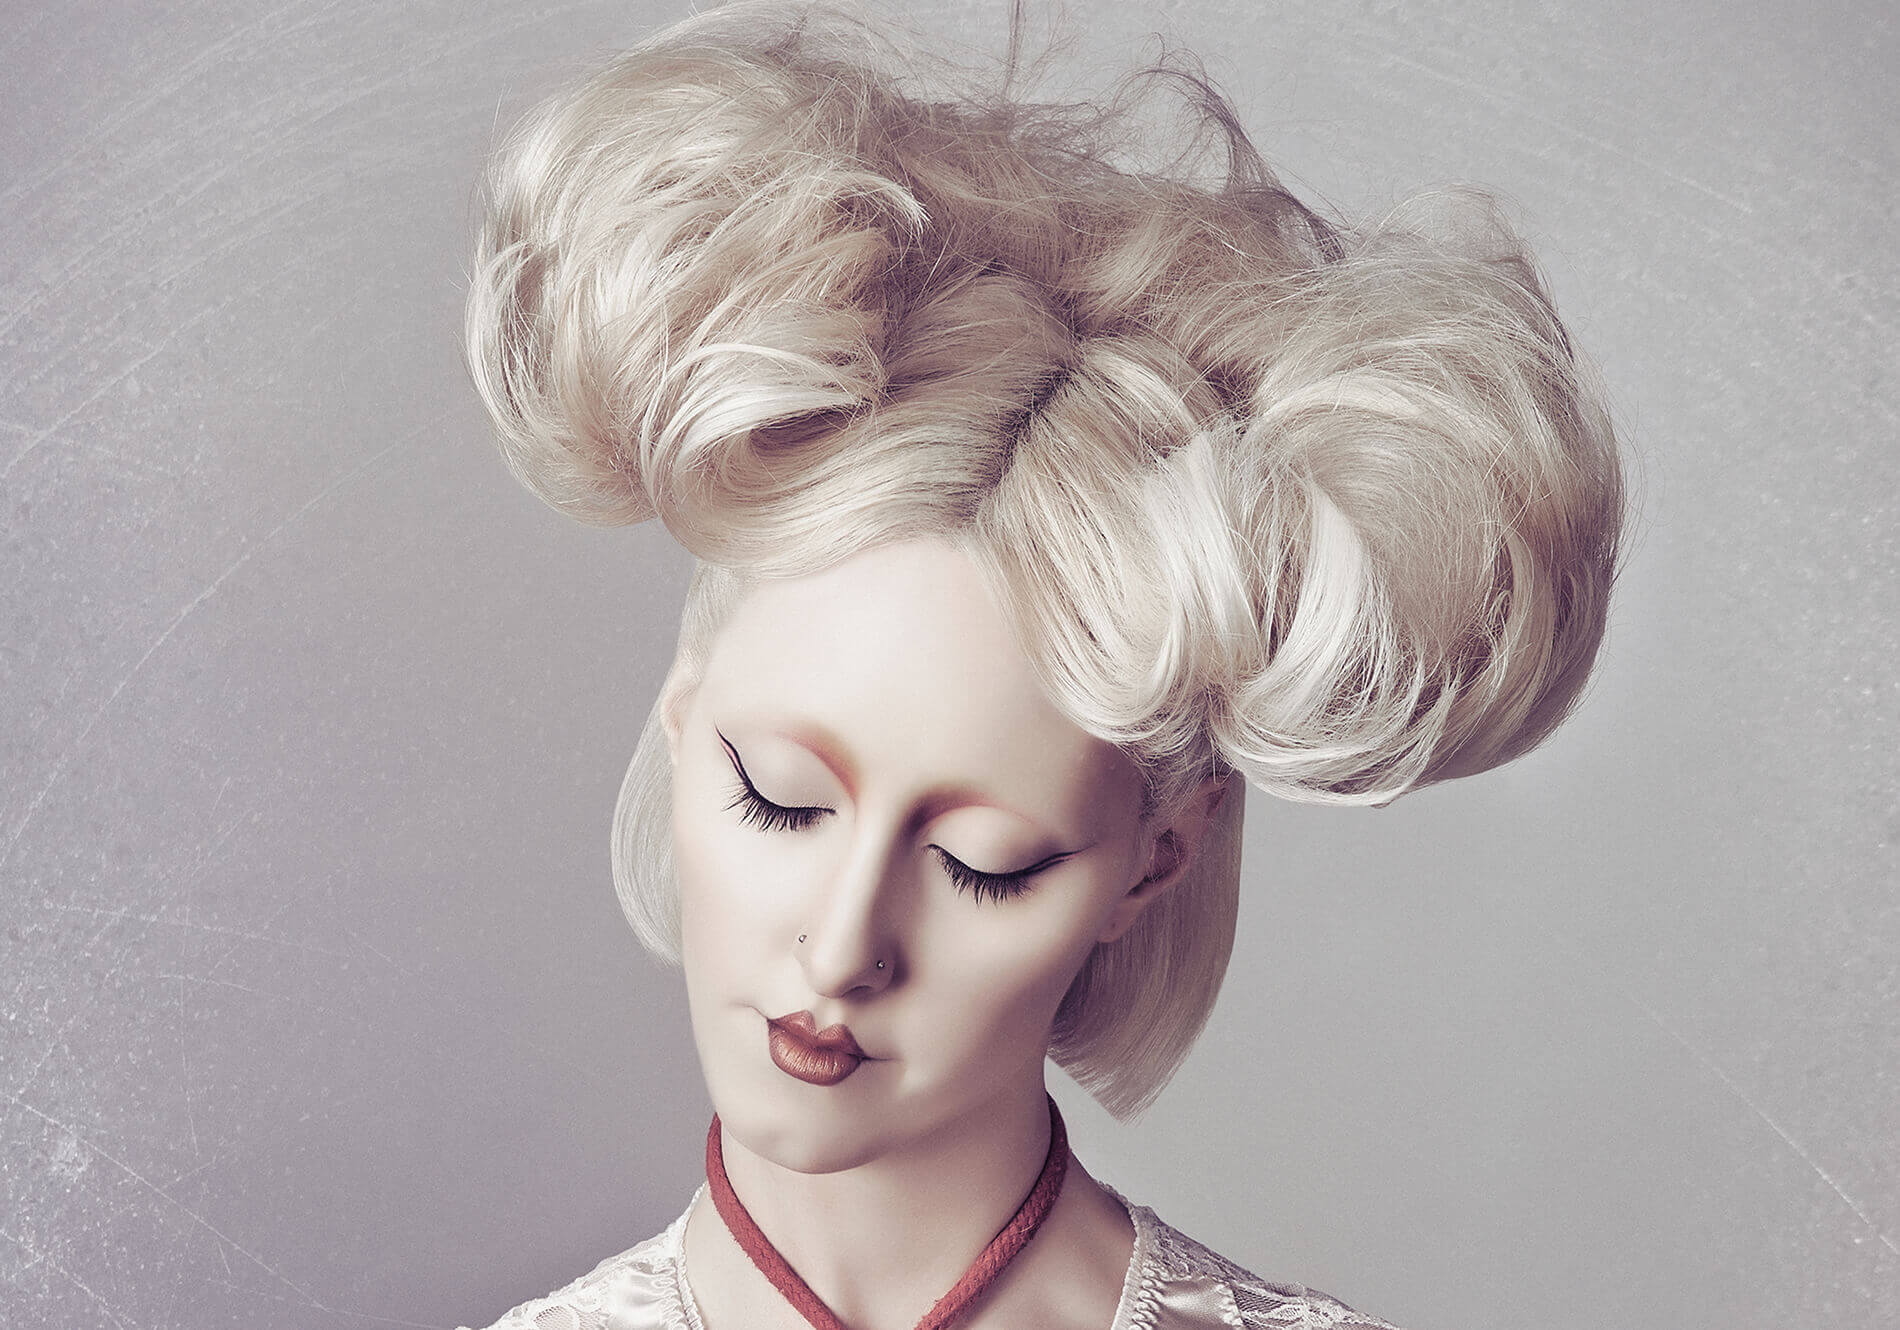 salon-photoshoot-blonde-upstyle-dramatic-curve-website-slider-2